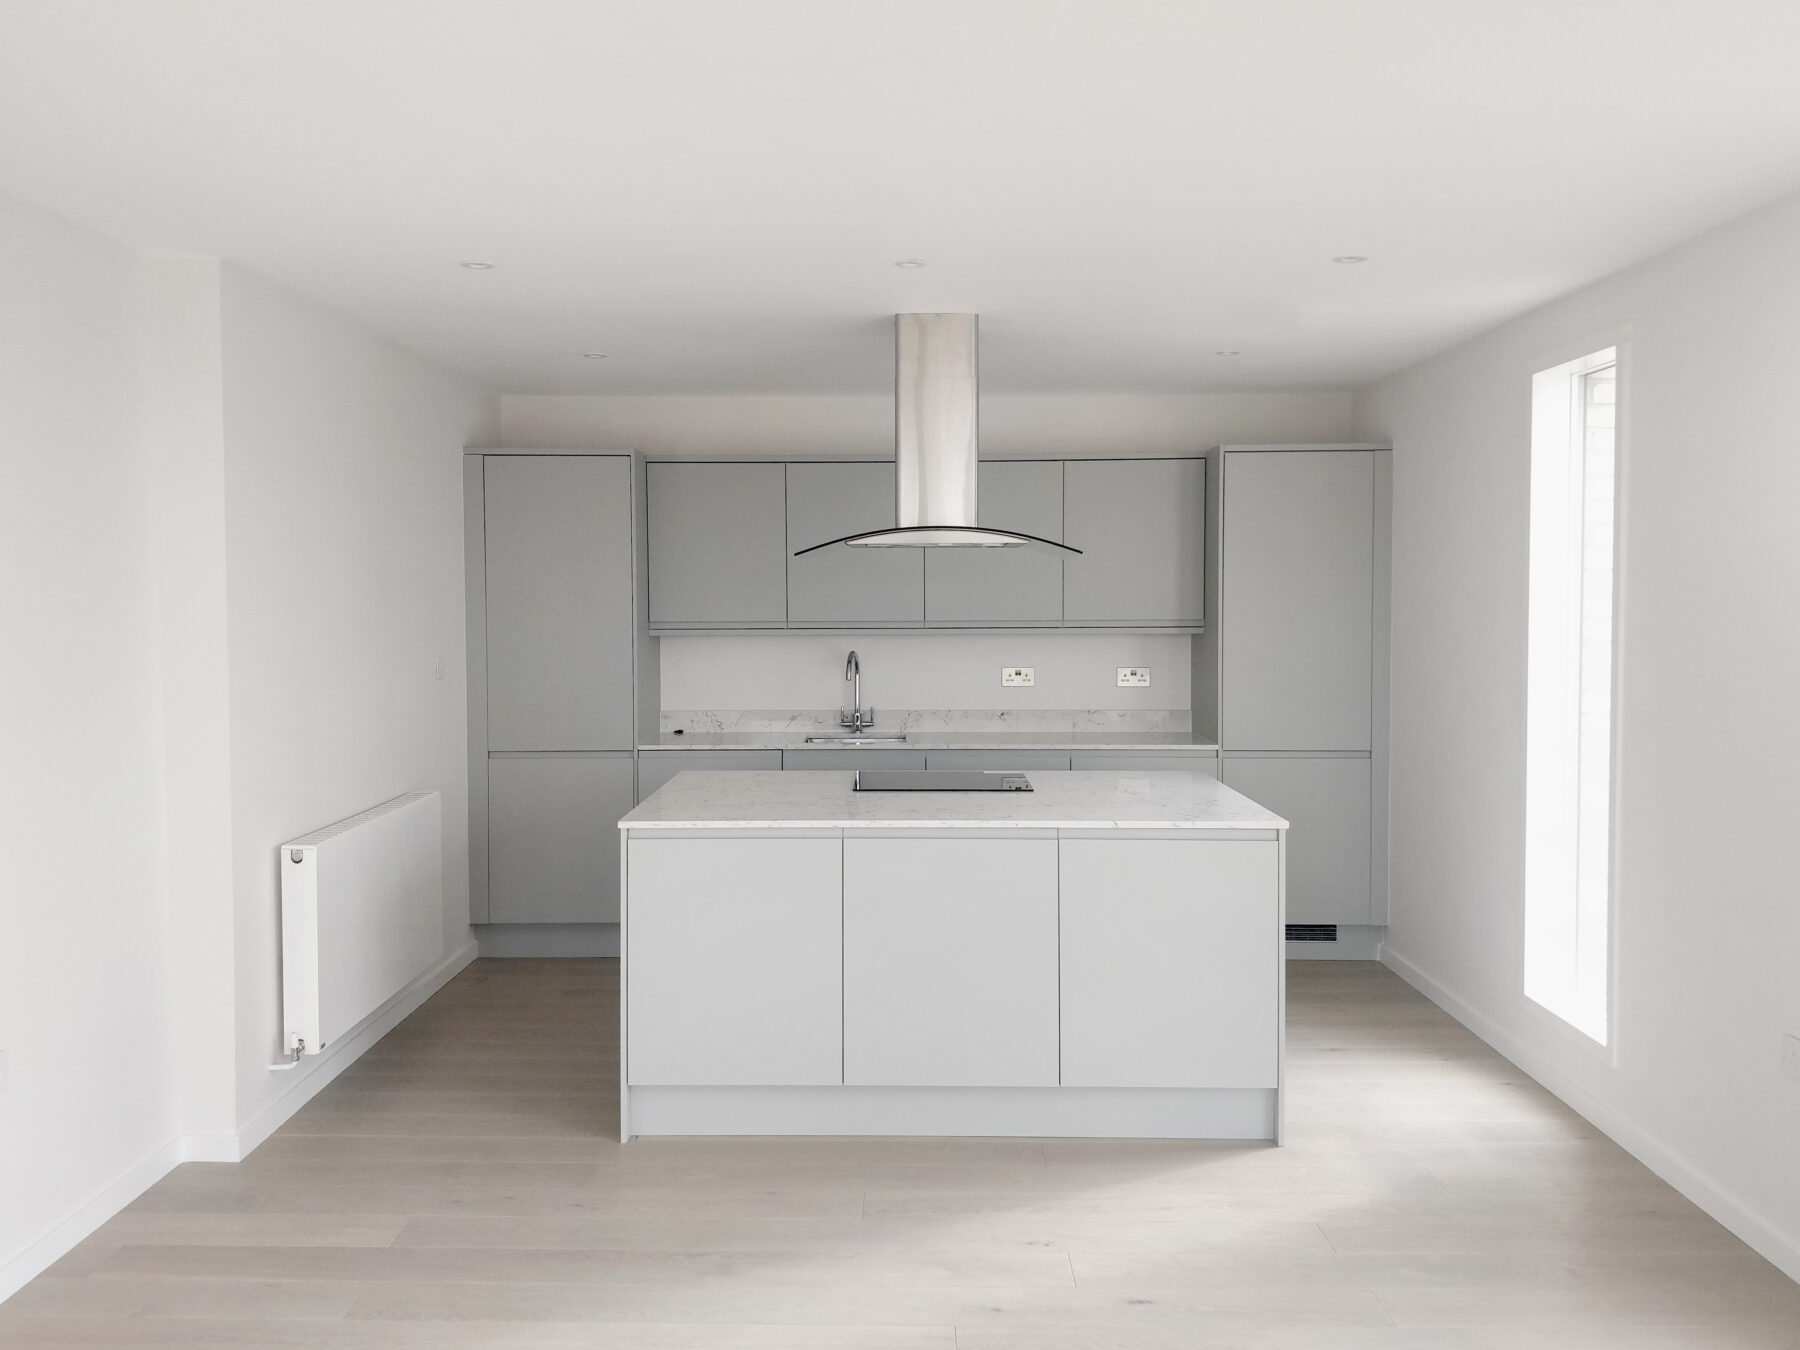 Water Lane Residential New Build Community Kitchen Island